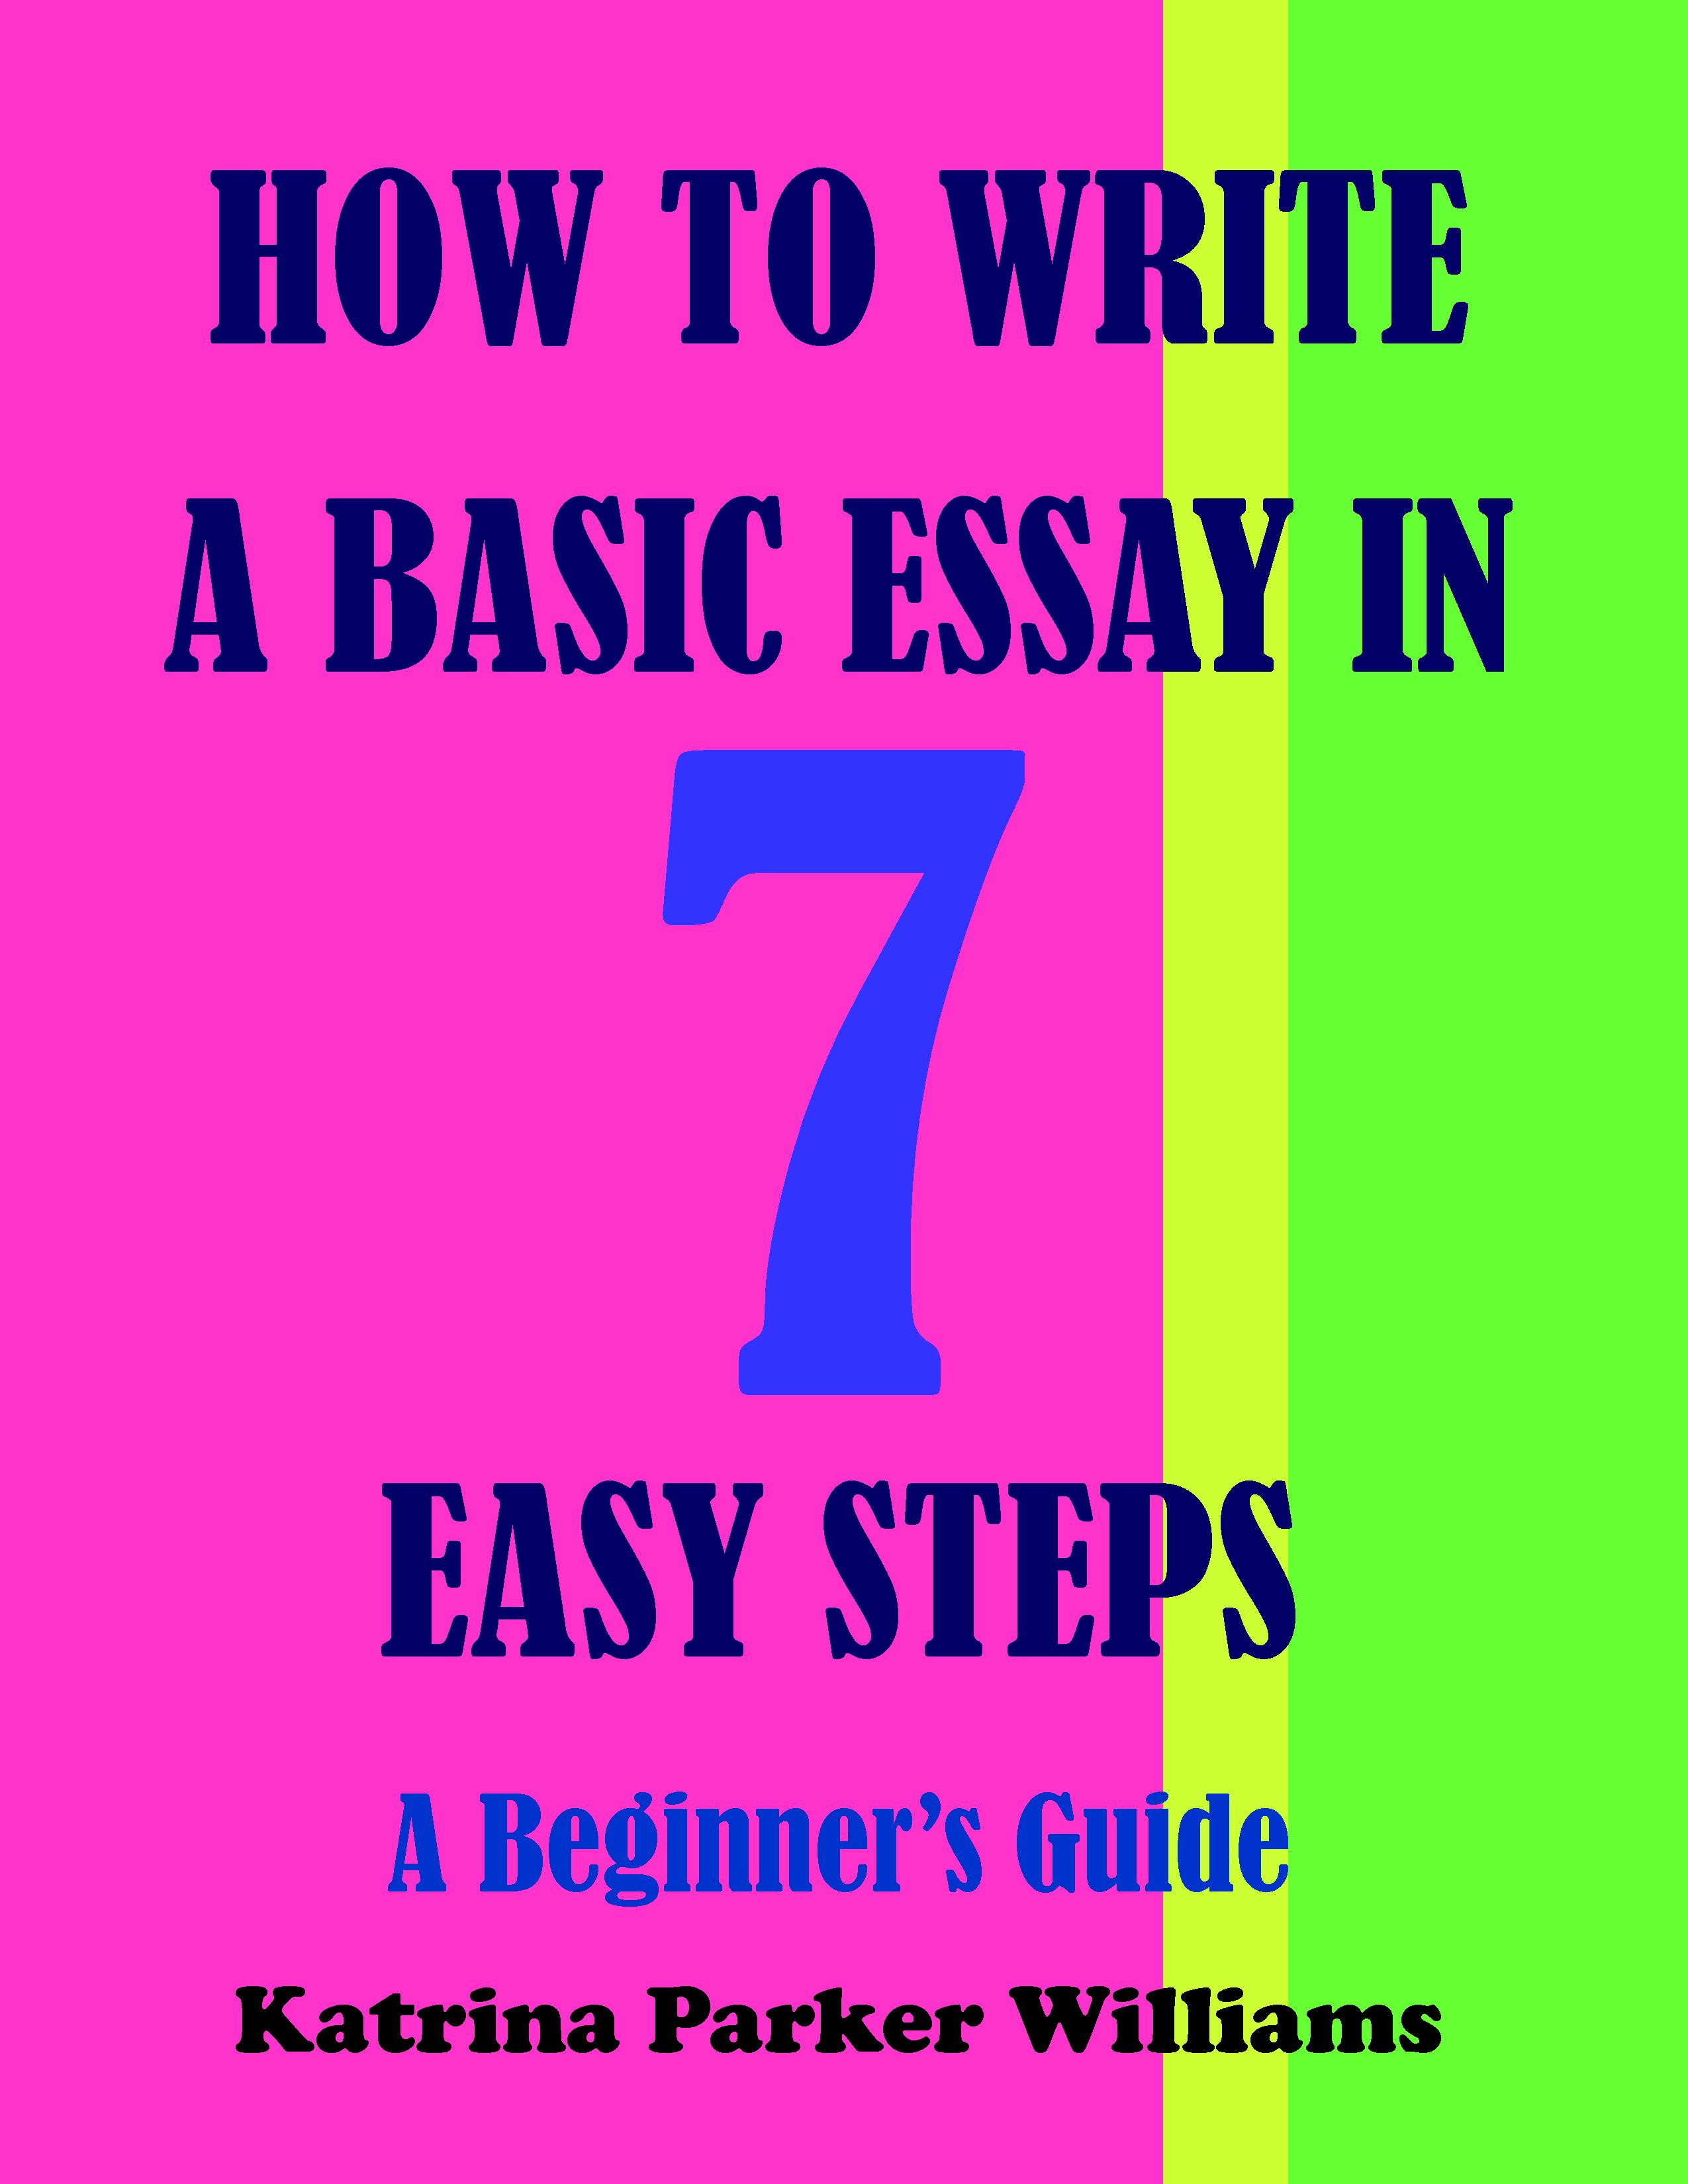 014 How To Write Basic Essay In Seven Easy Steps Writing An Stunning Middle School Argumentative Full